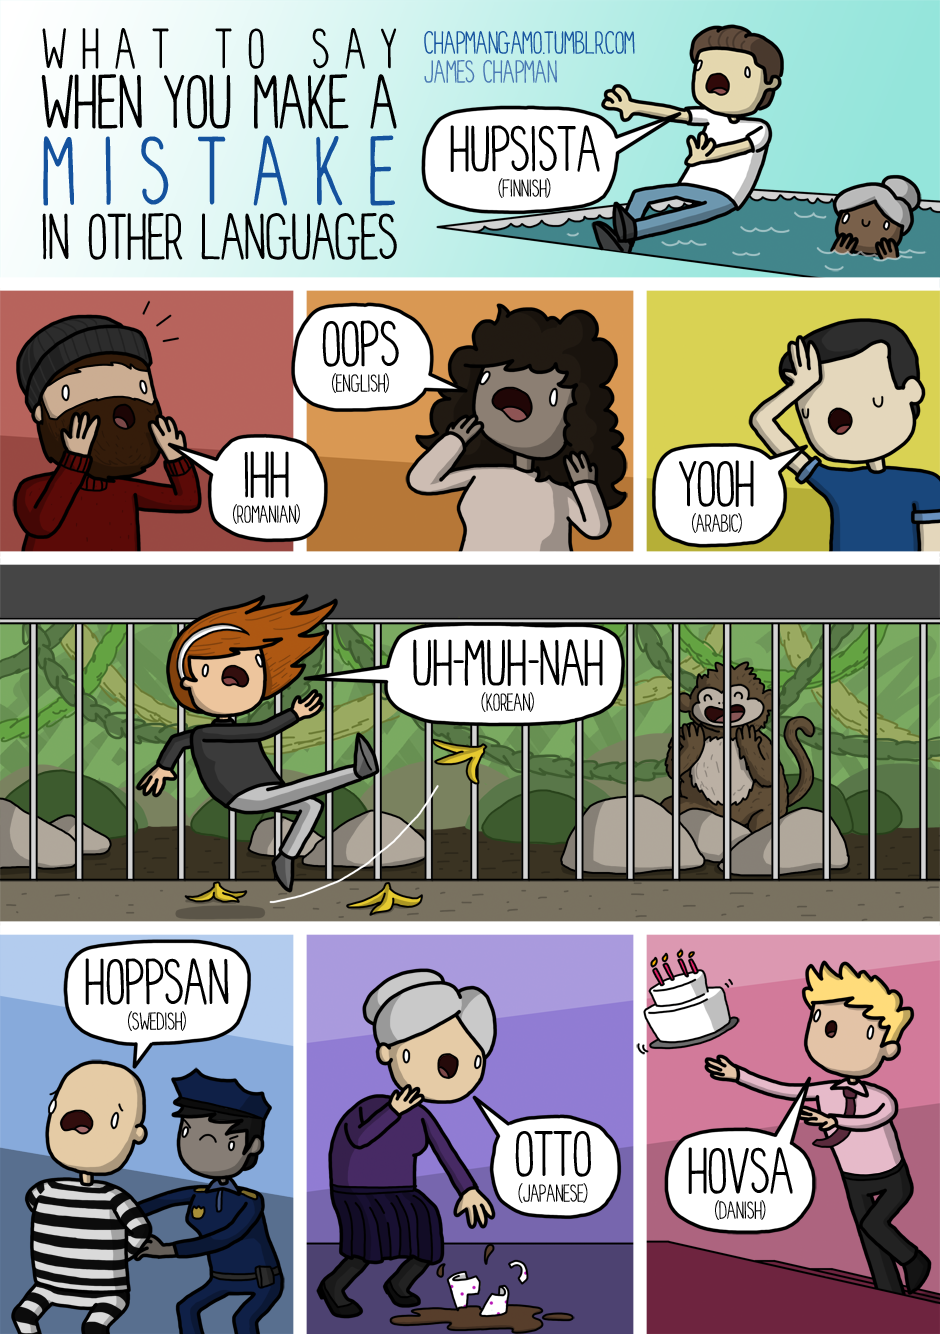 PICTURES BY JAMES CHAPMAN • Oops in other languages! Some